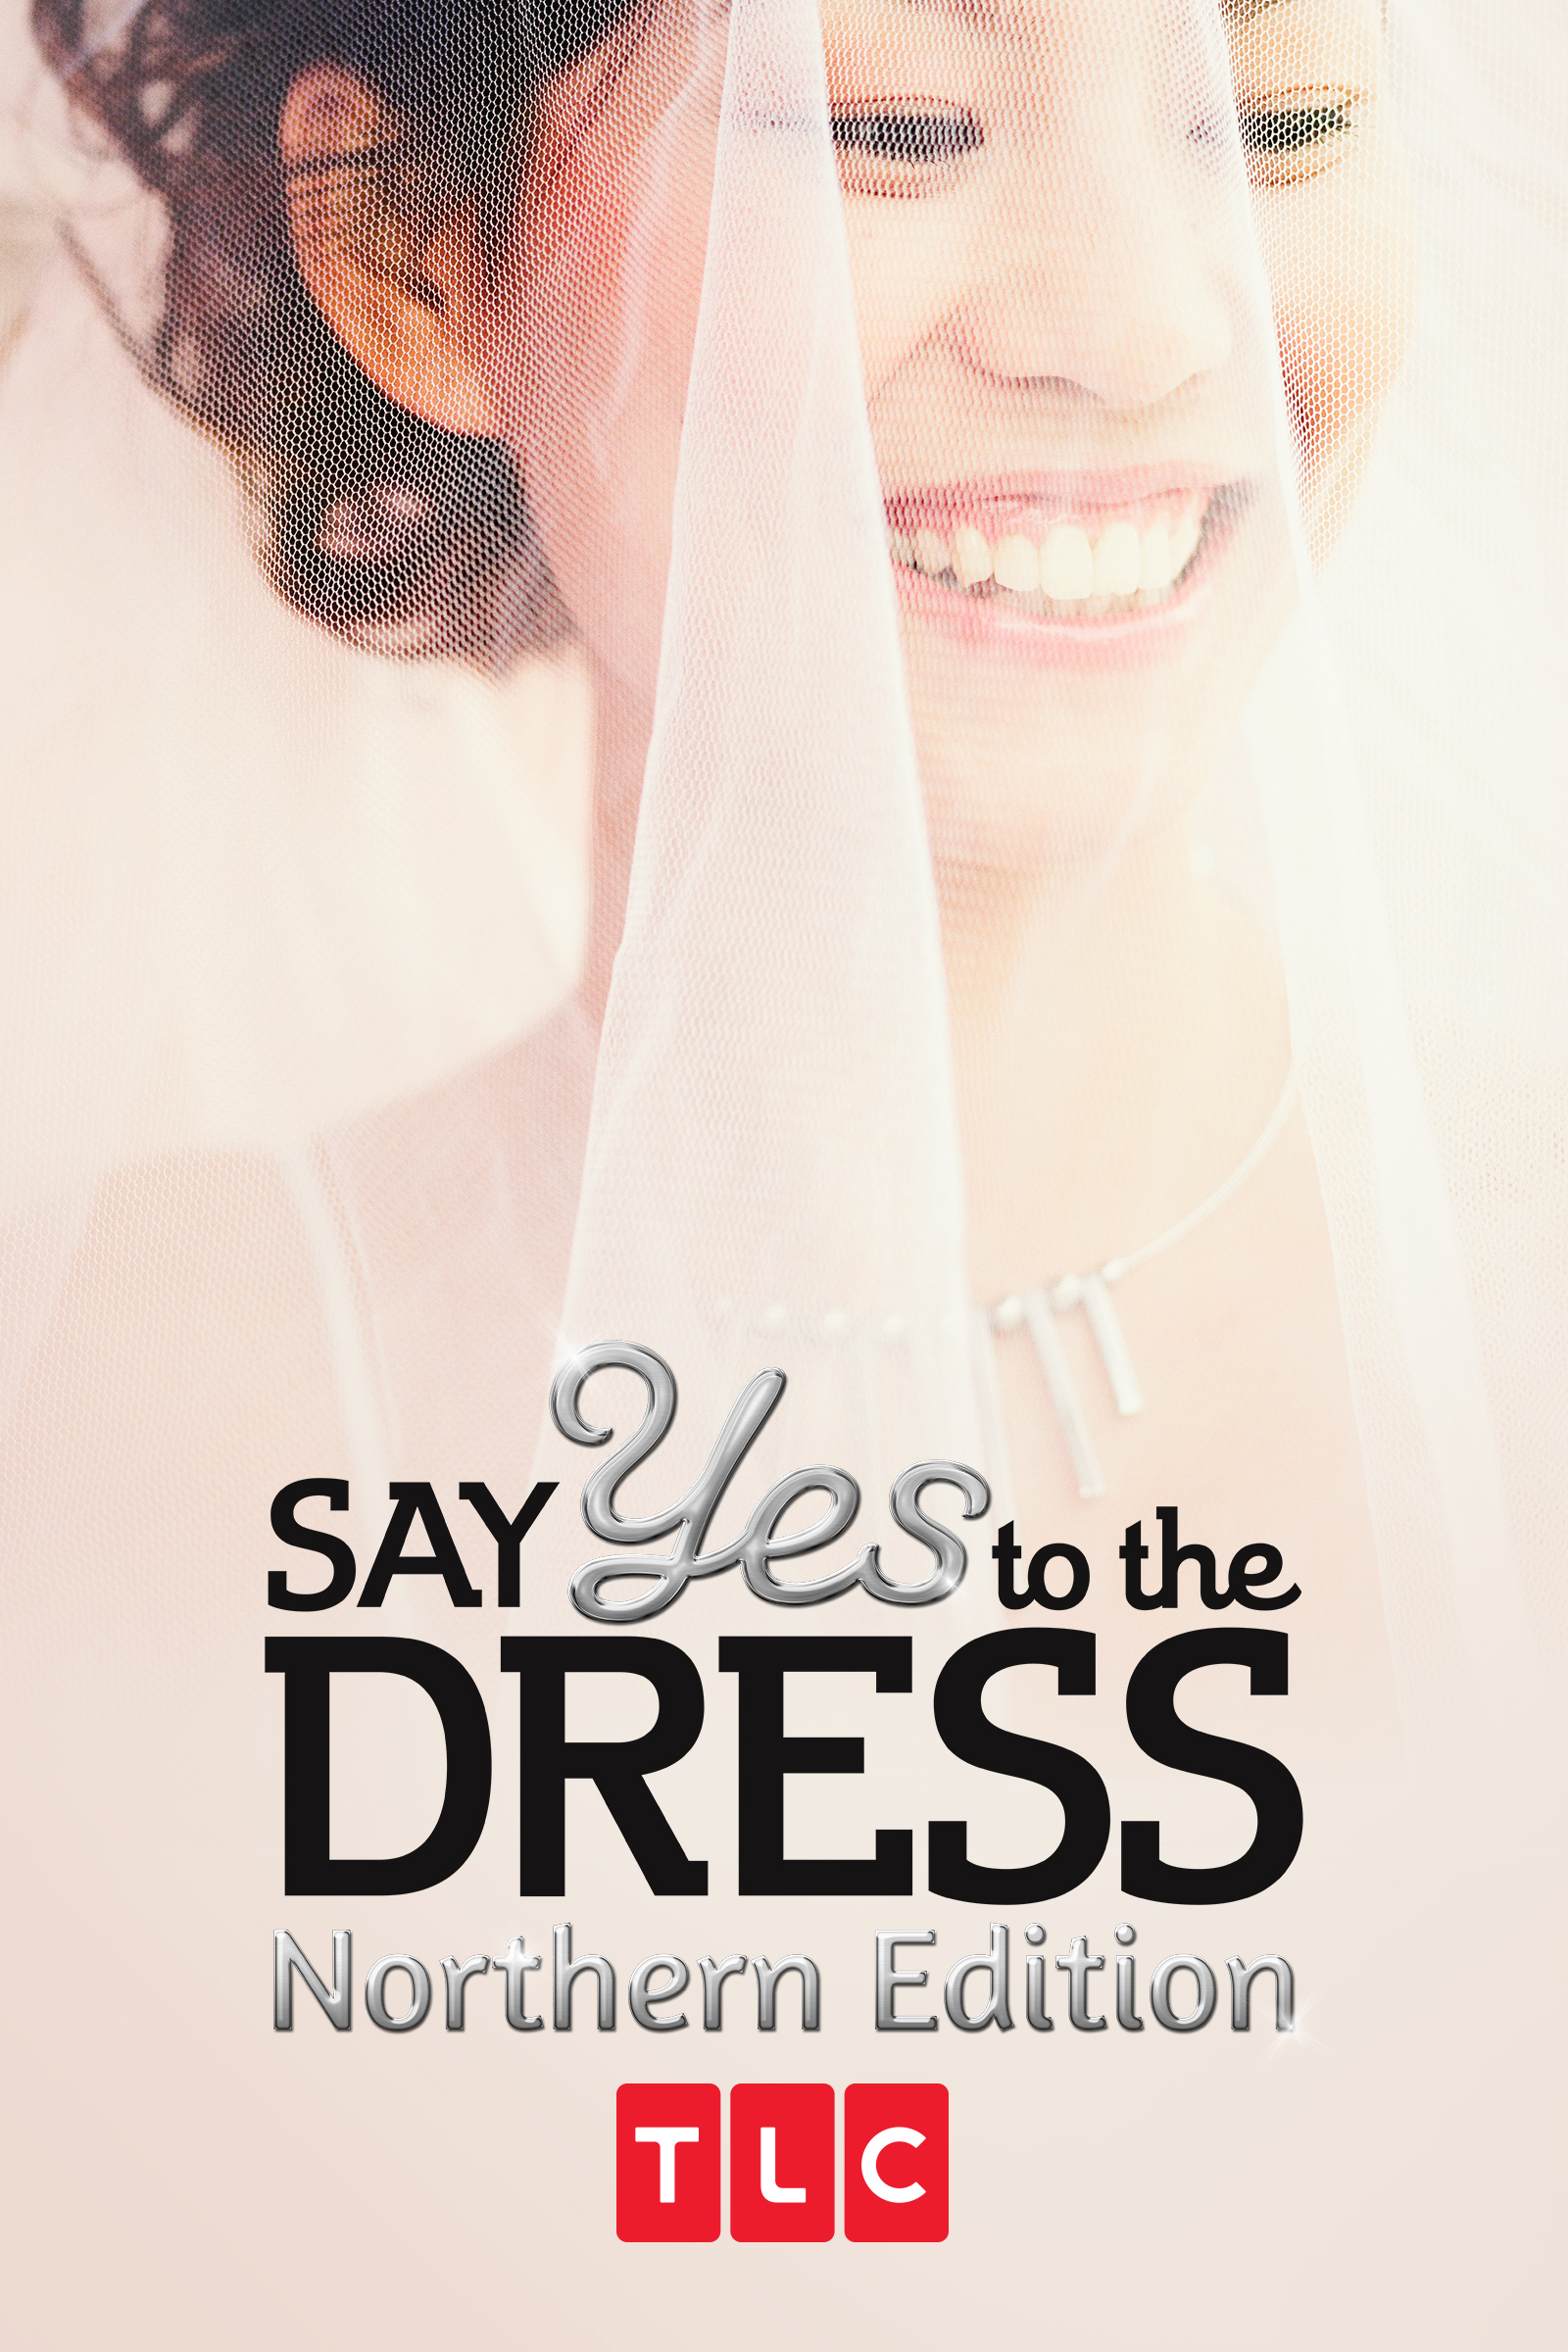 say yes to the dress northern edition